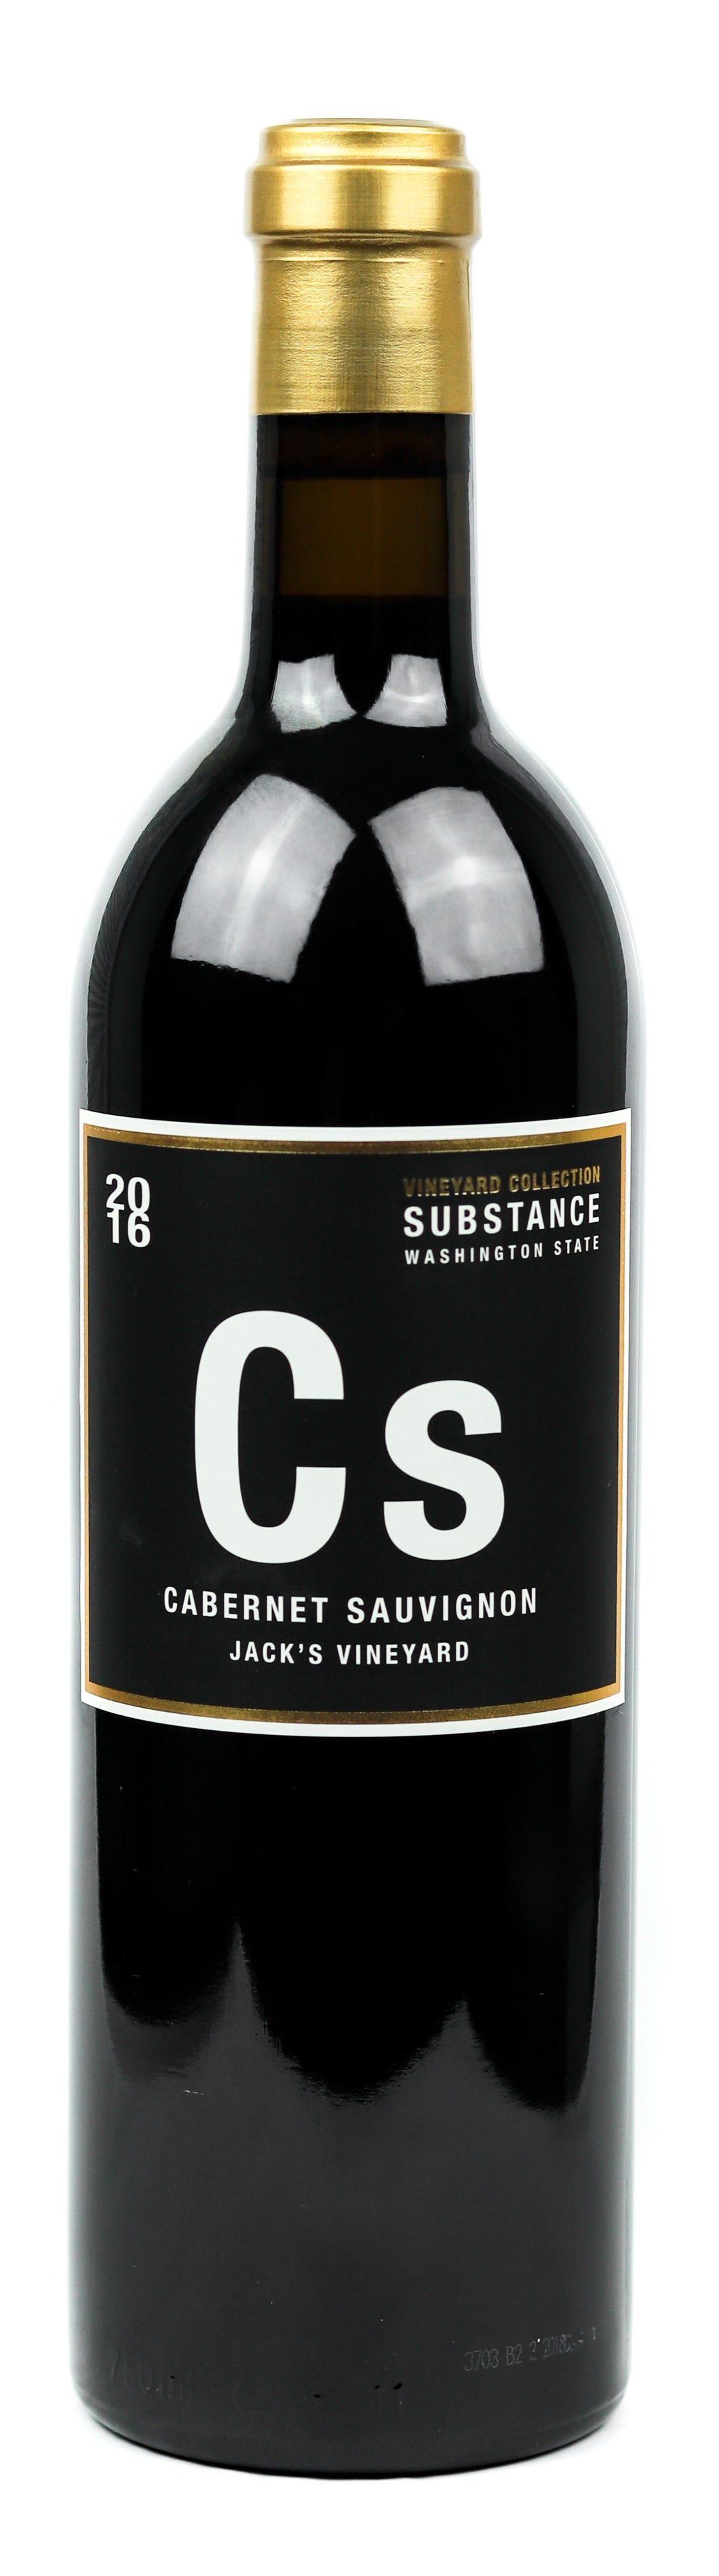 Super Substance Cabernet Sauvignon Jack's Vineyard 2016